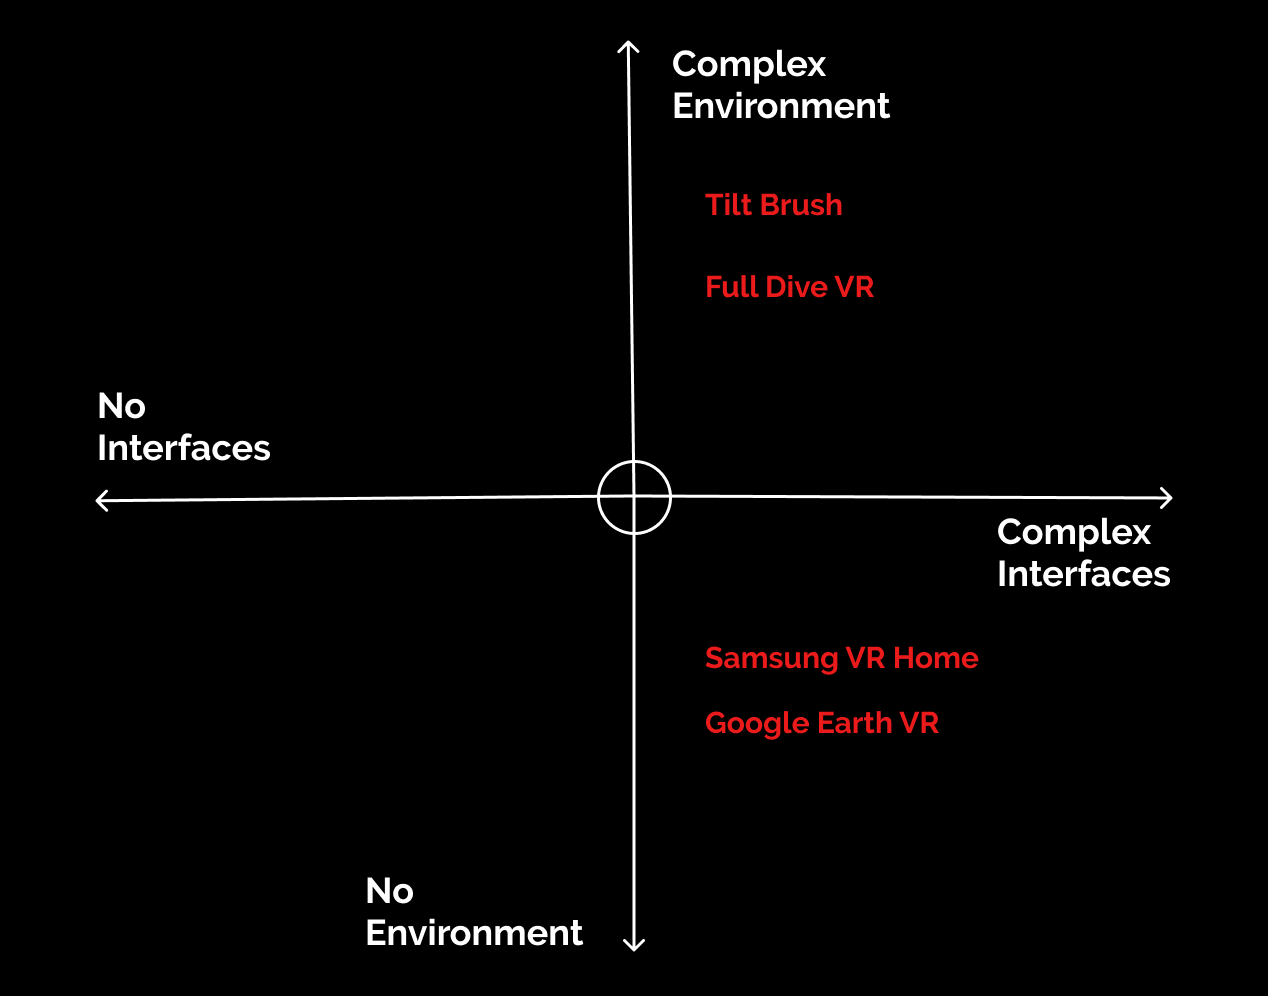 Designing User Experience for Virtual Reality (VR) applications